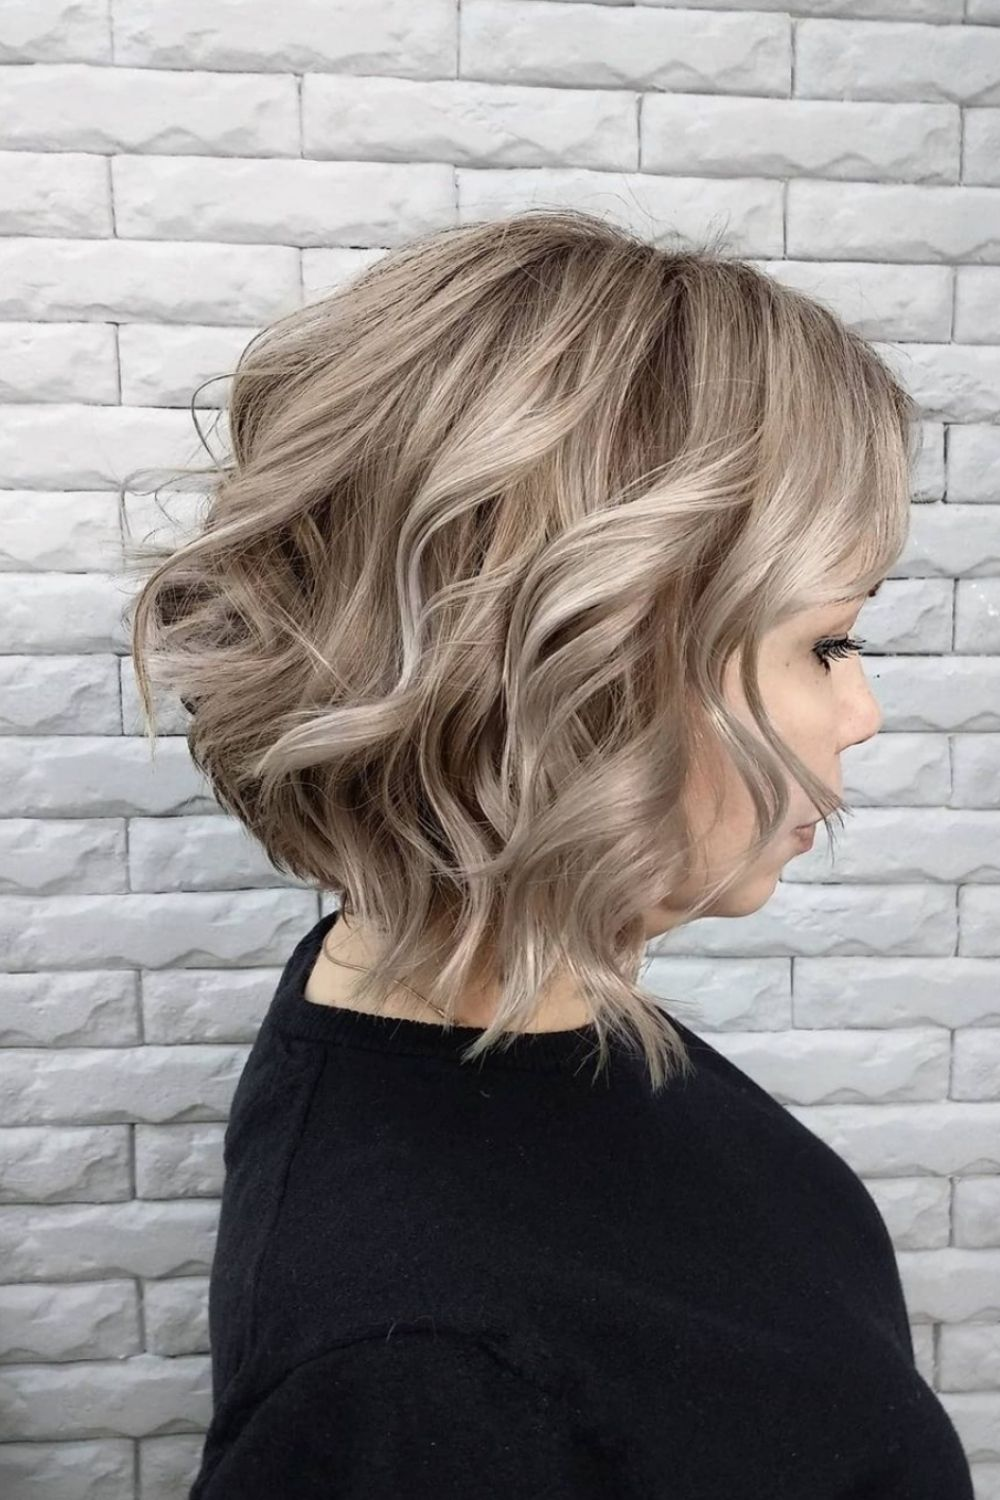 34 Cool Shoulder length haircut with bangs to try 2021